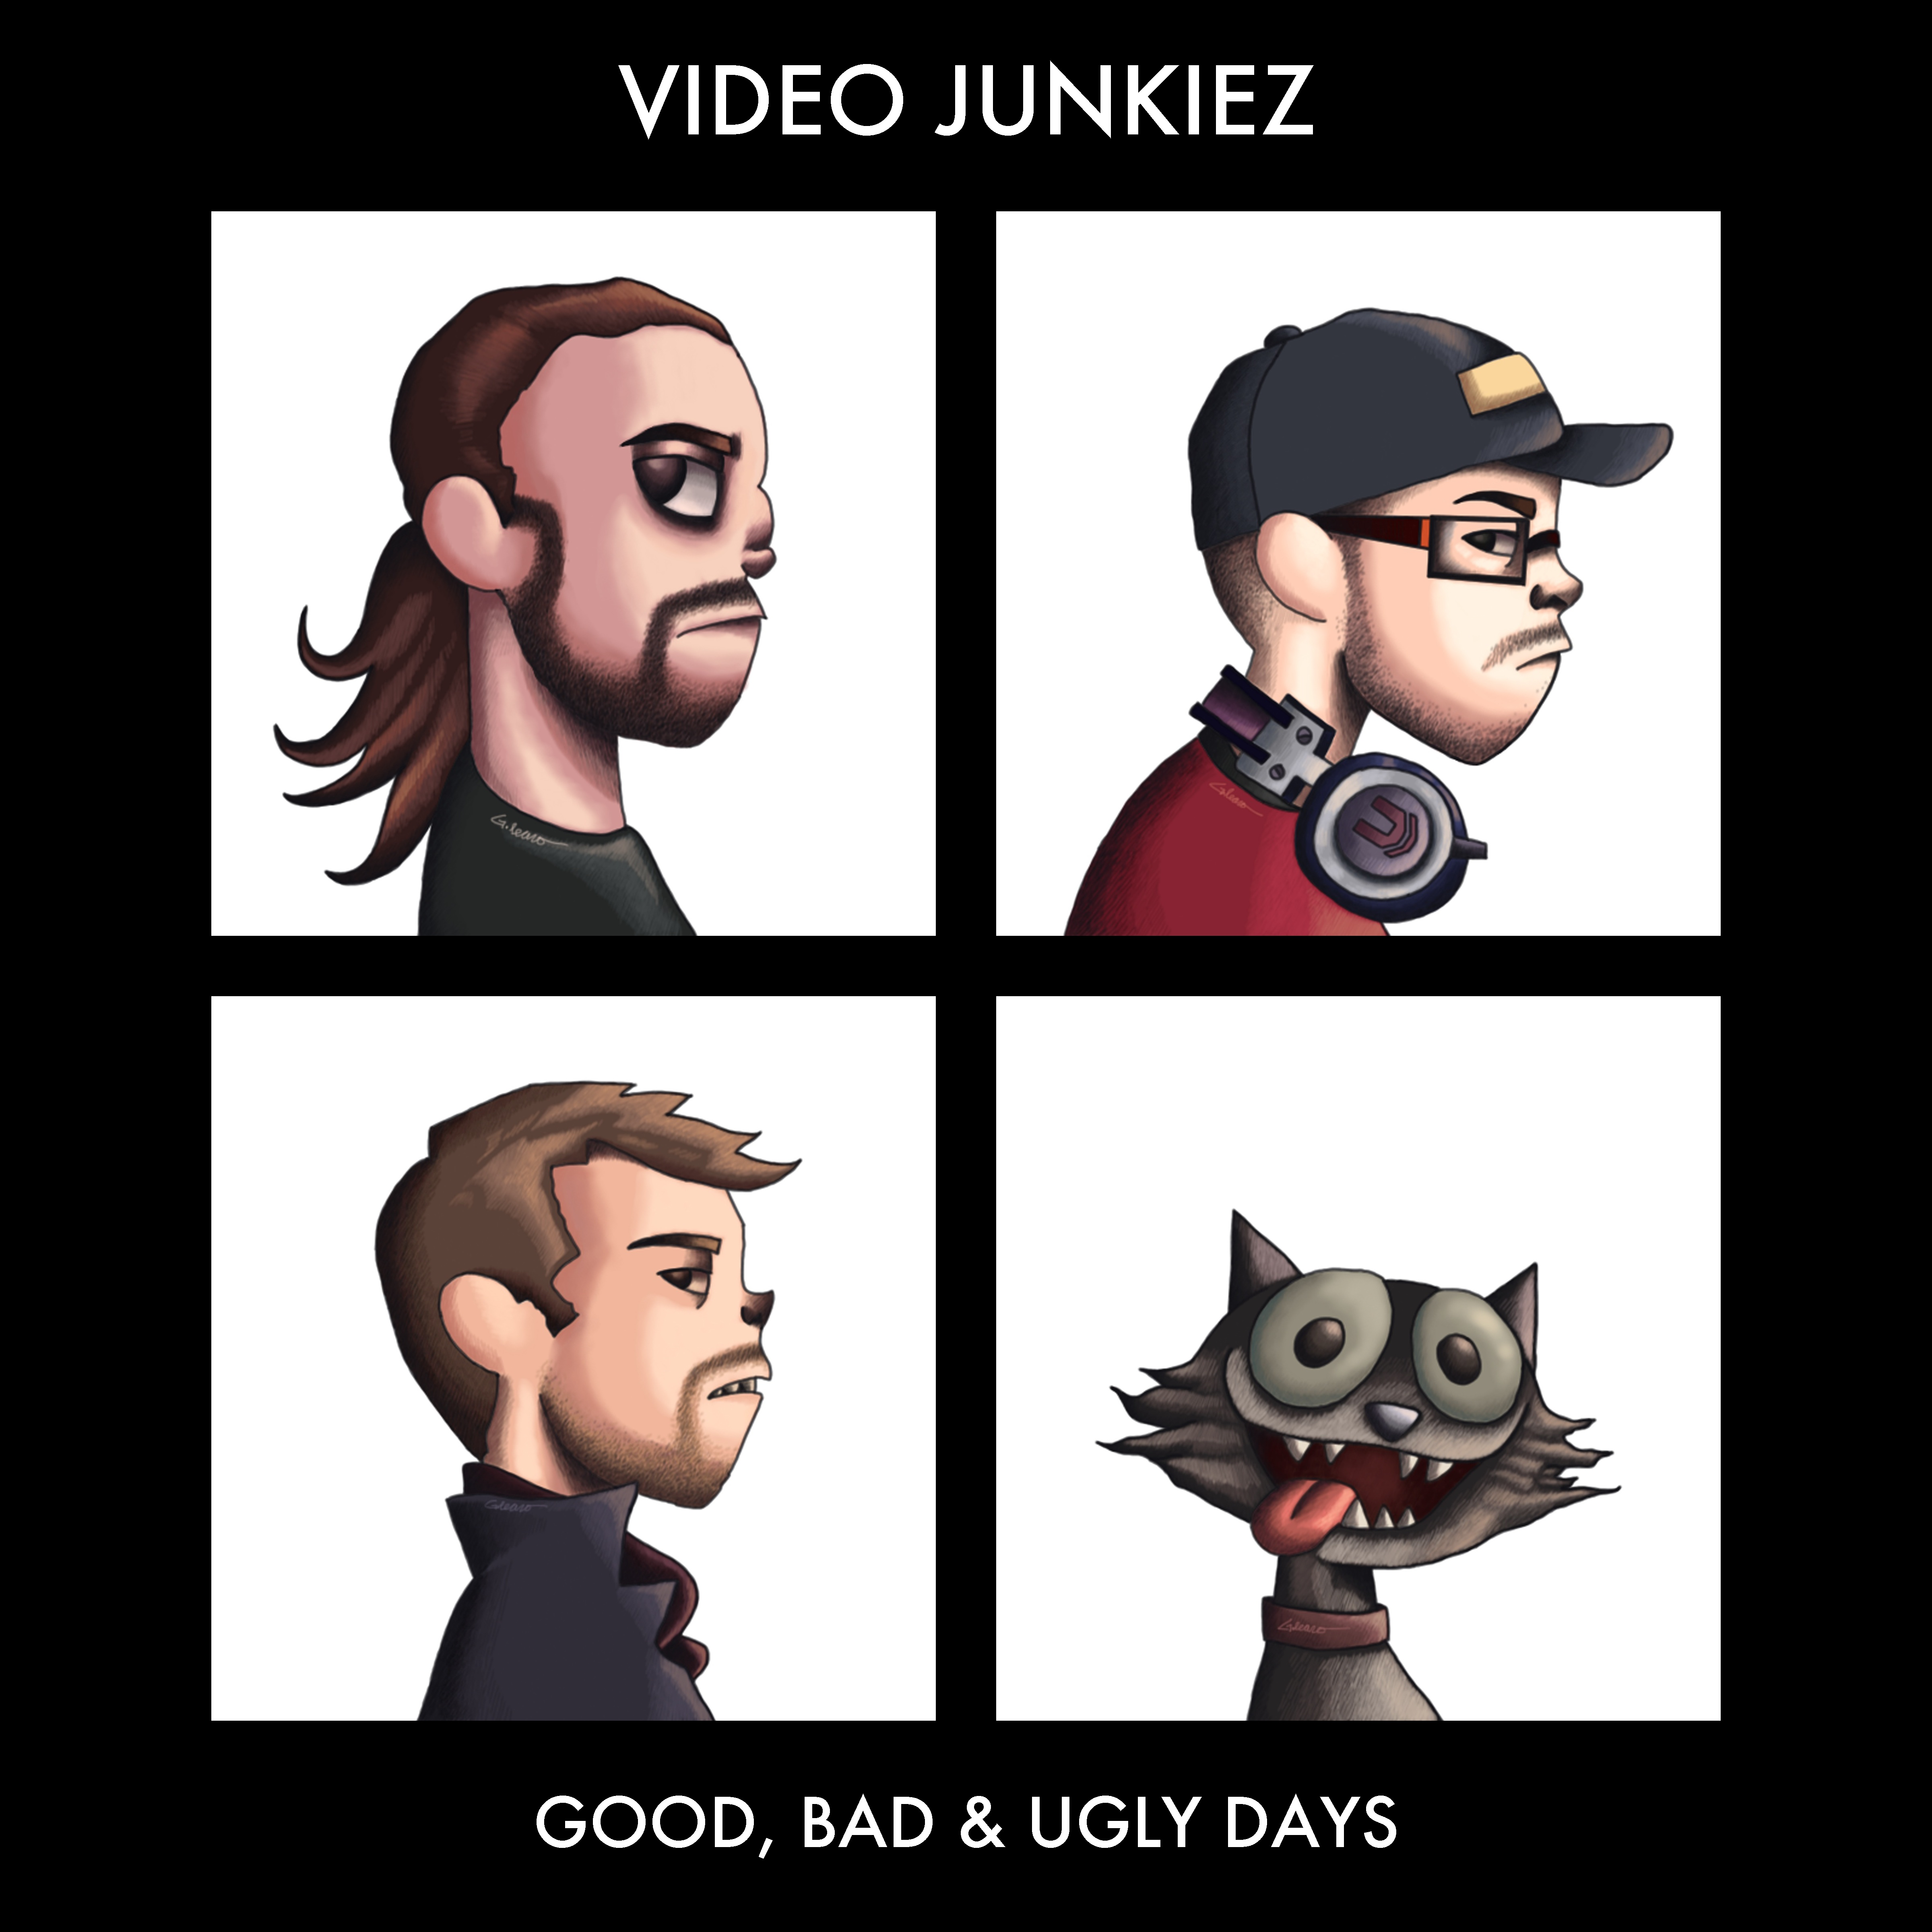 Video Junkiez